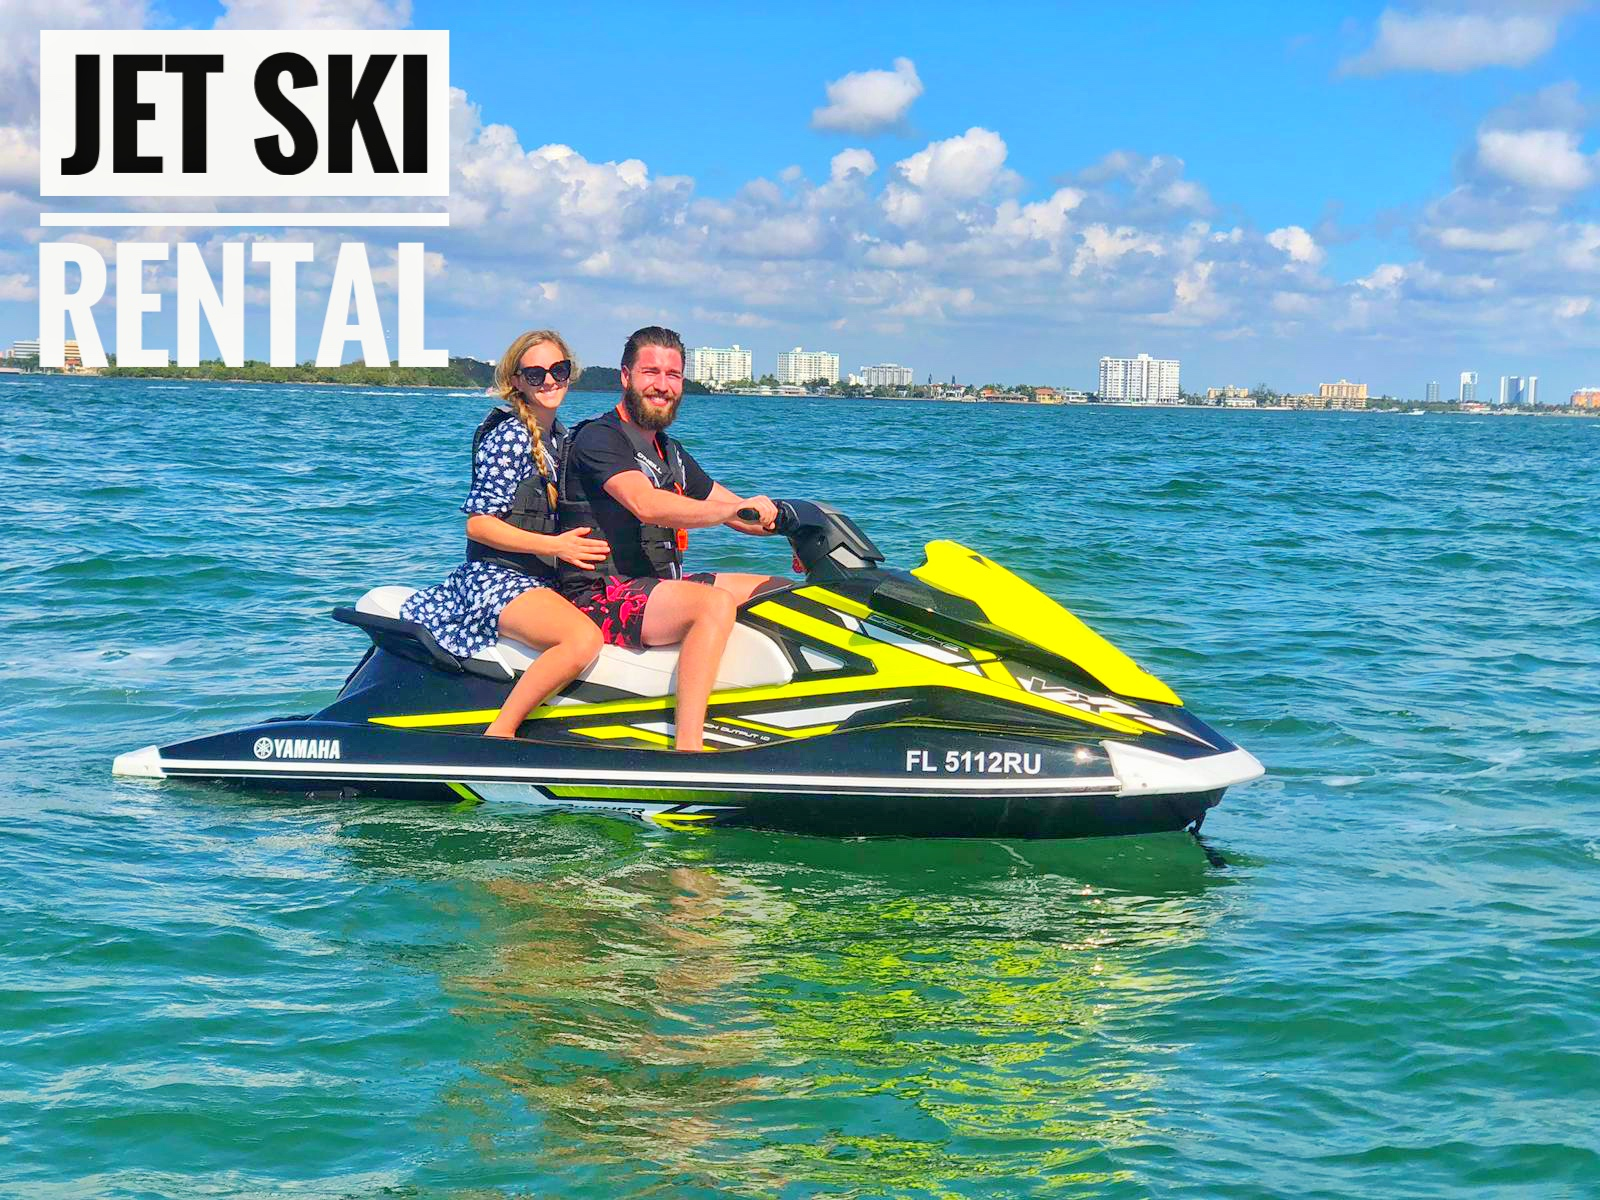 jet-ski-rental-south-beach.jpg